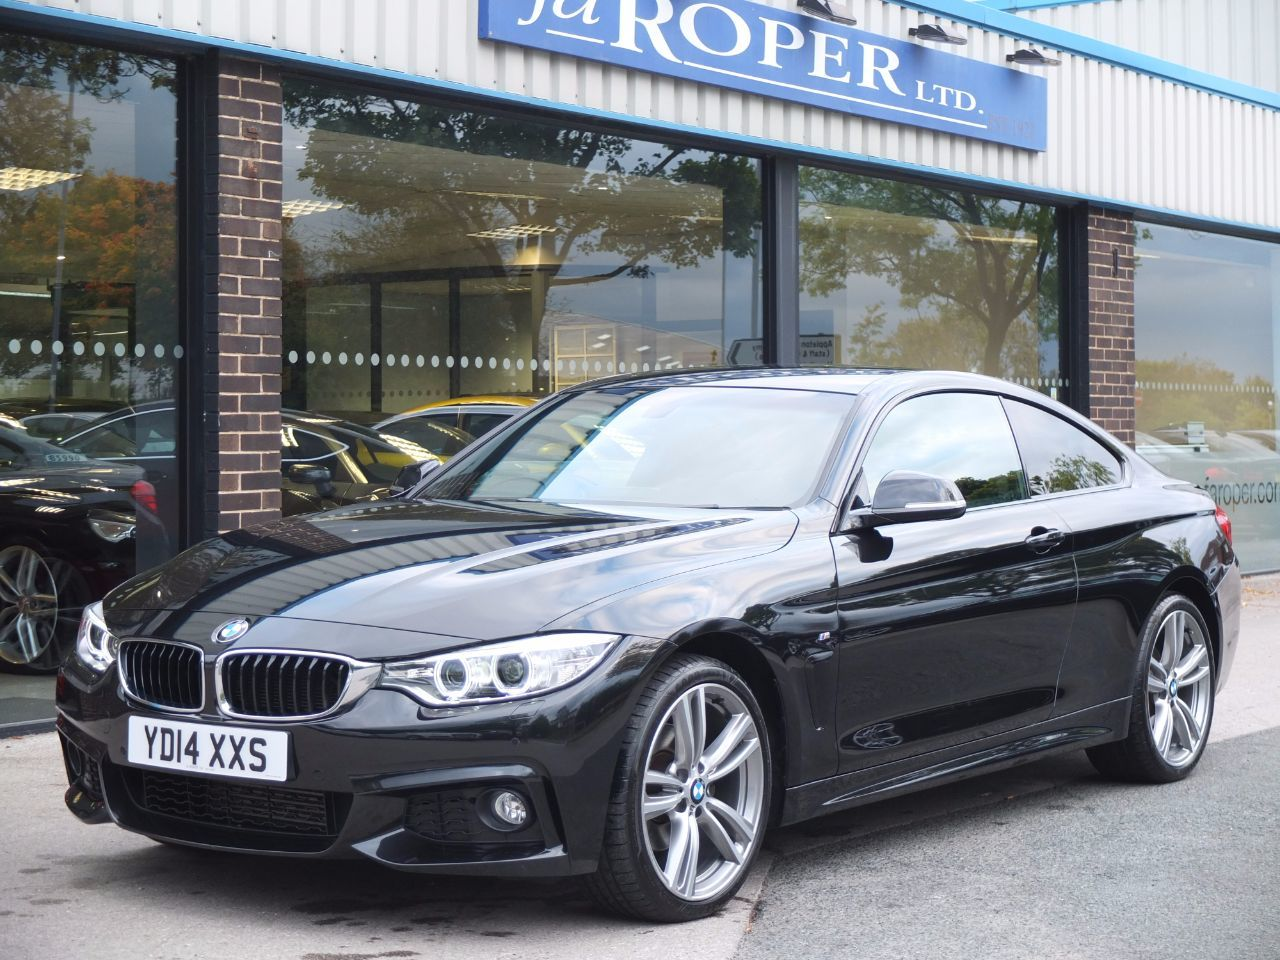 BMW 4 Series 2.0 420d xDrive M Sport Auto Coupe Diesel Black Sapphire MetallicBMW 4 Series 2.0 420d xDrive M Sport Auto Coupe Diesel Black Sapphire Metallic at fa Roper Ltd Bradford